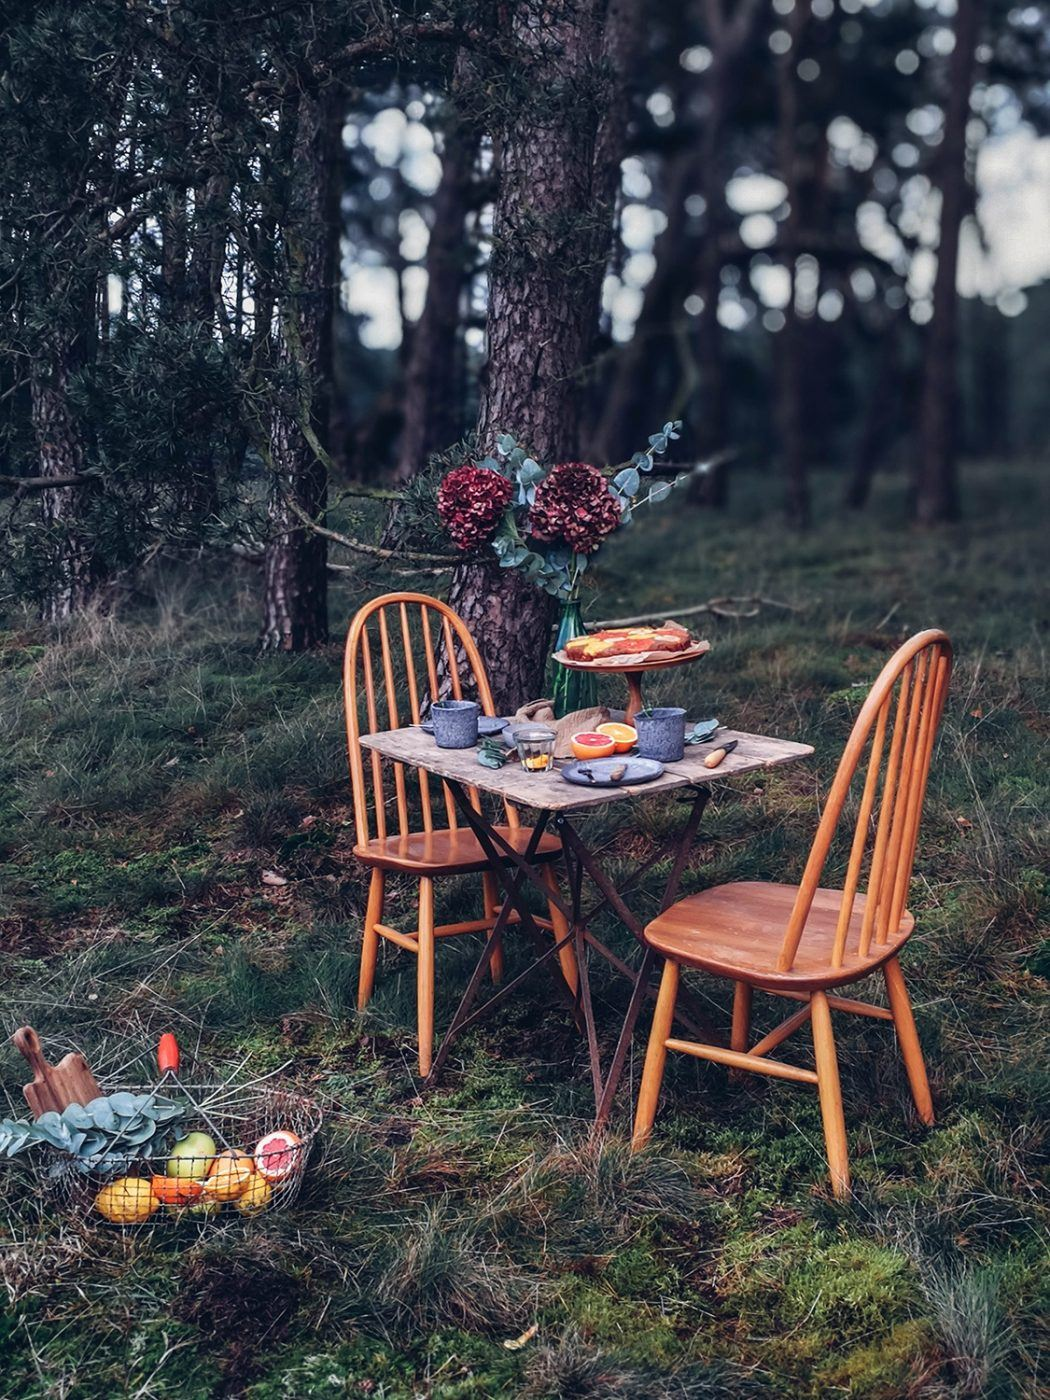 Image for Gluten-free Citrus Cardamom Cake and an Afternoon in the Woods